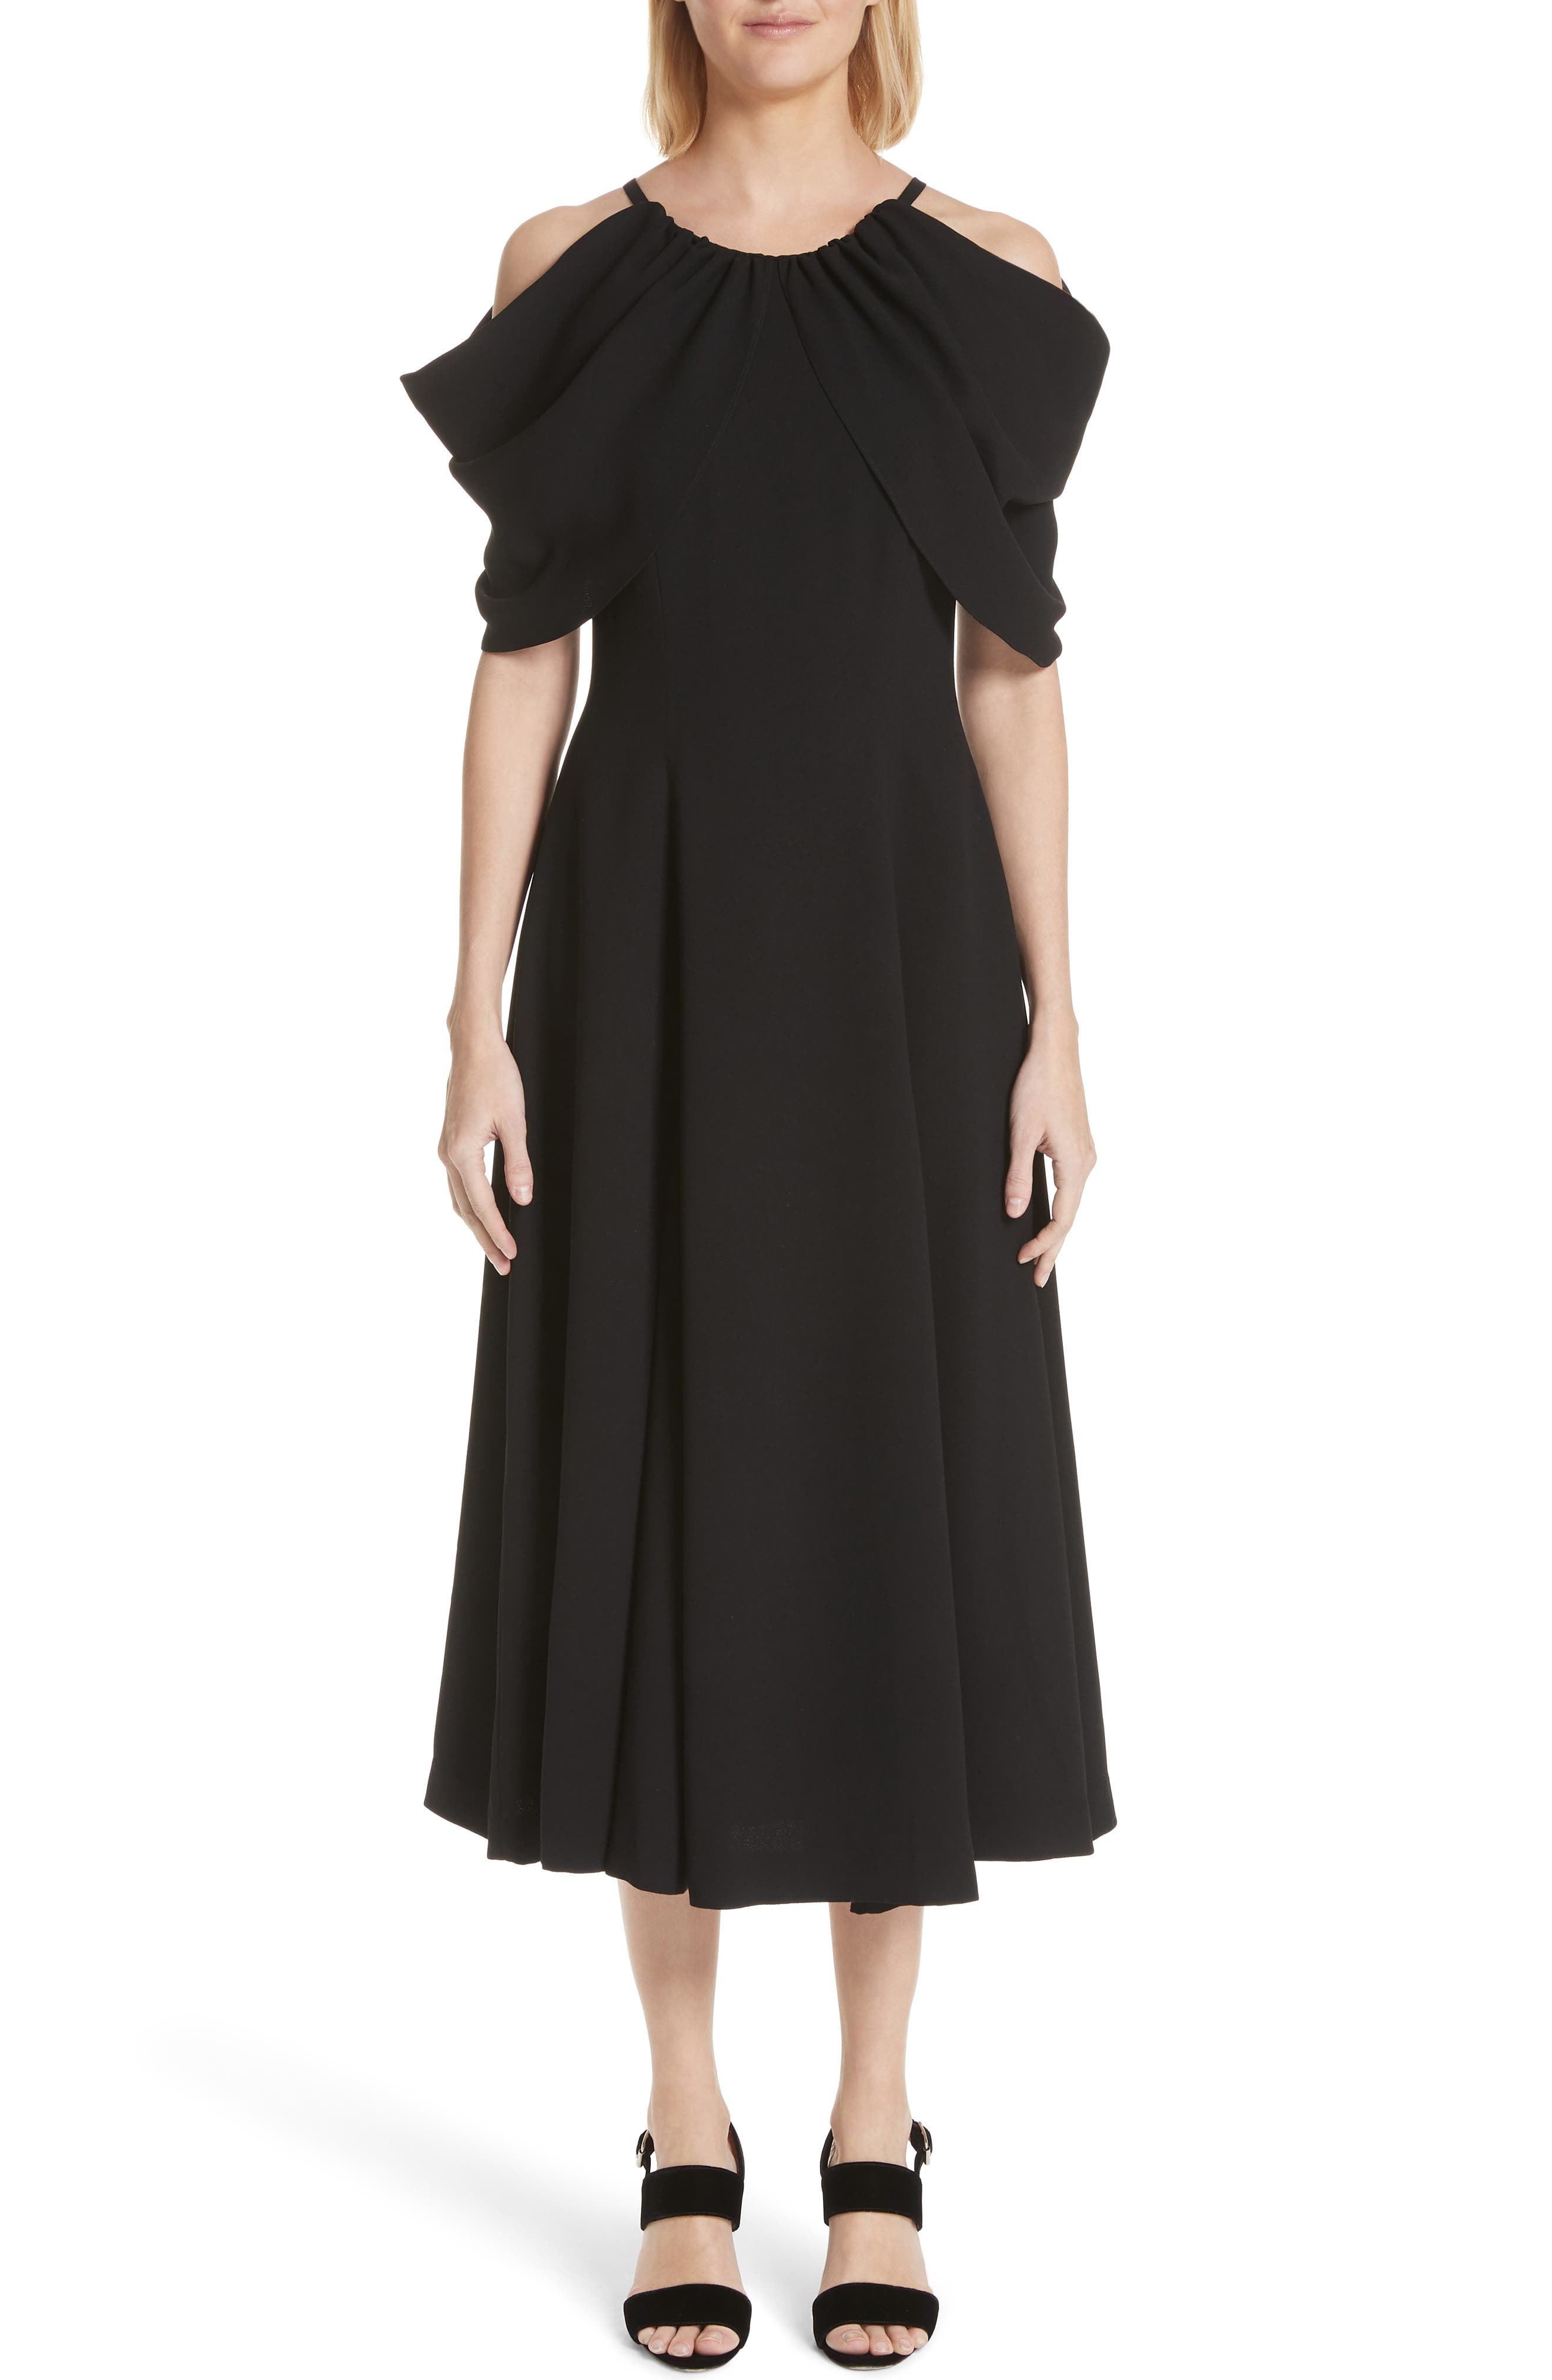 Rejina Pyo Sasha Cold Shoulder Dress